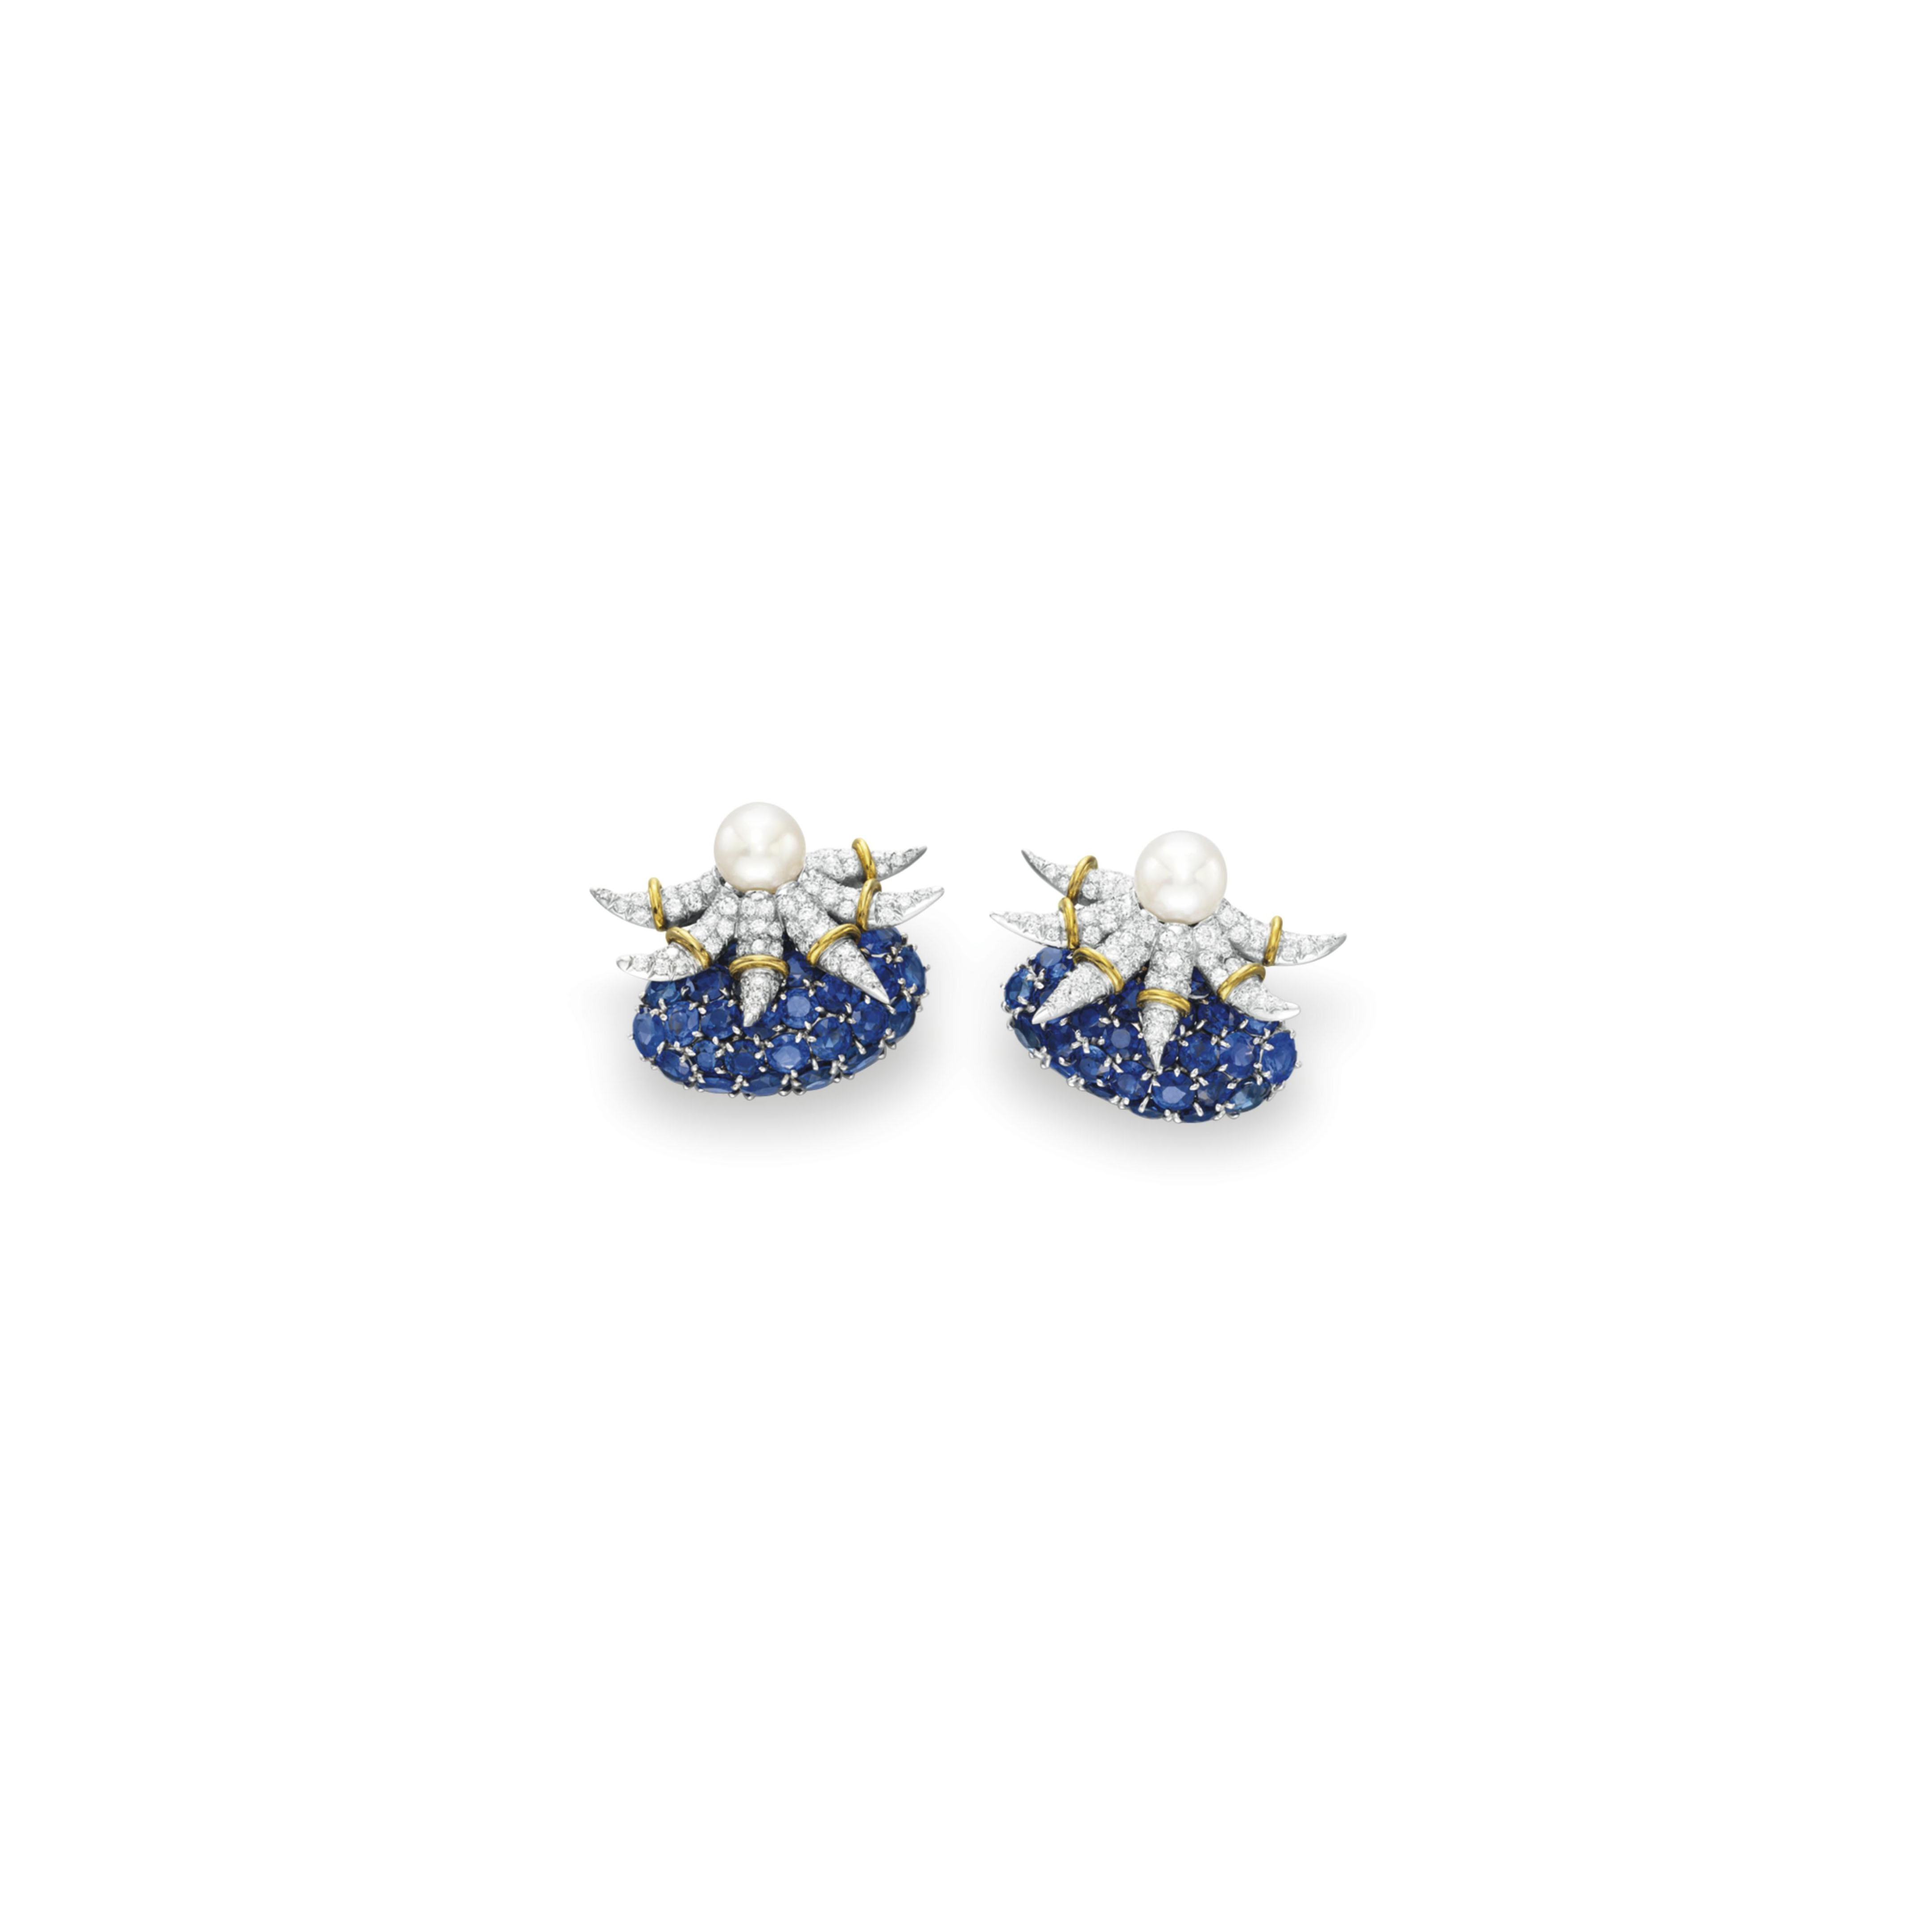 A PAIR OF DIAMOND, SAPPHIRE AND CULTURED PEARL EAR CLIPS, BY JEAN SCHLUMBERGER, TIFFANY & CO.